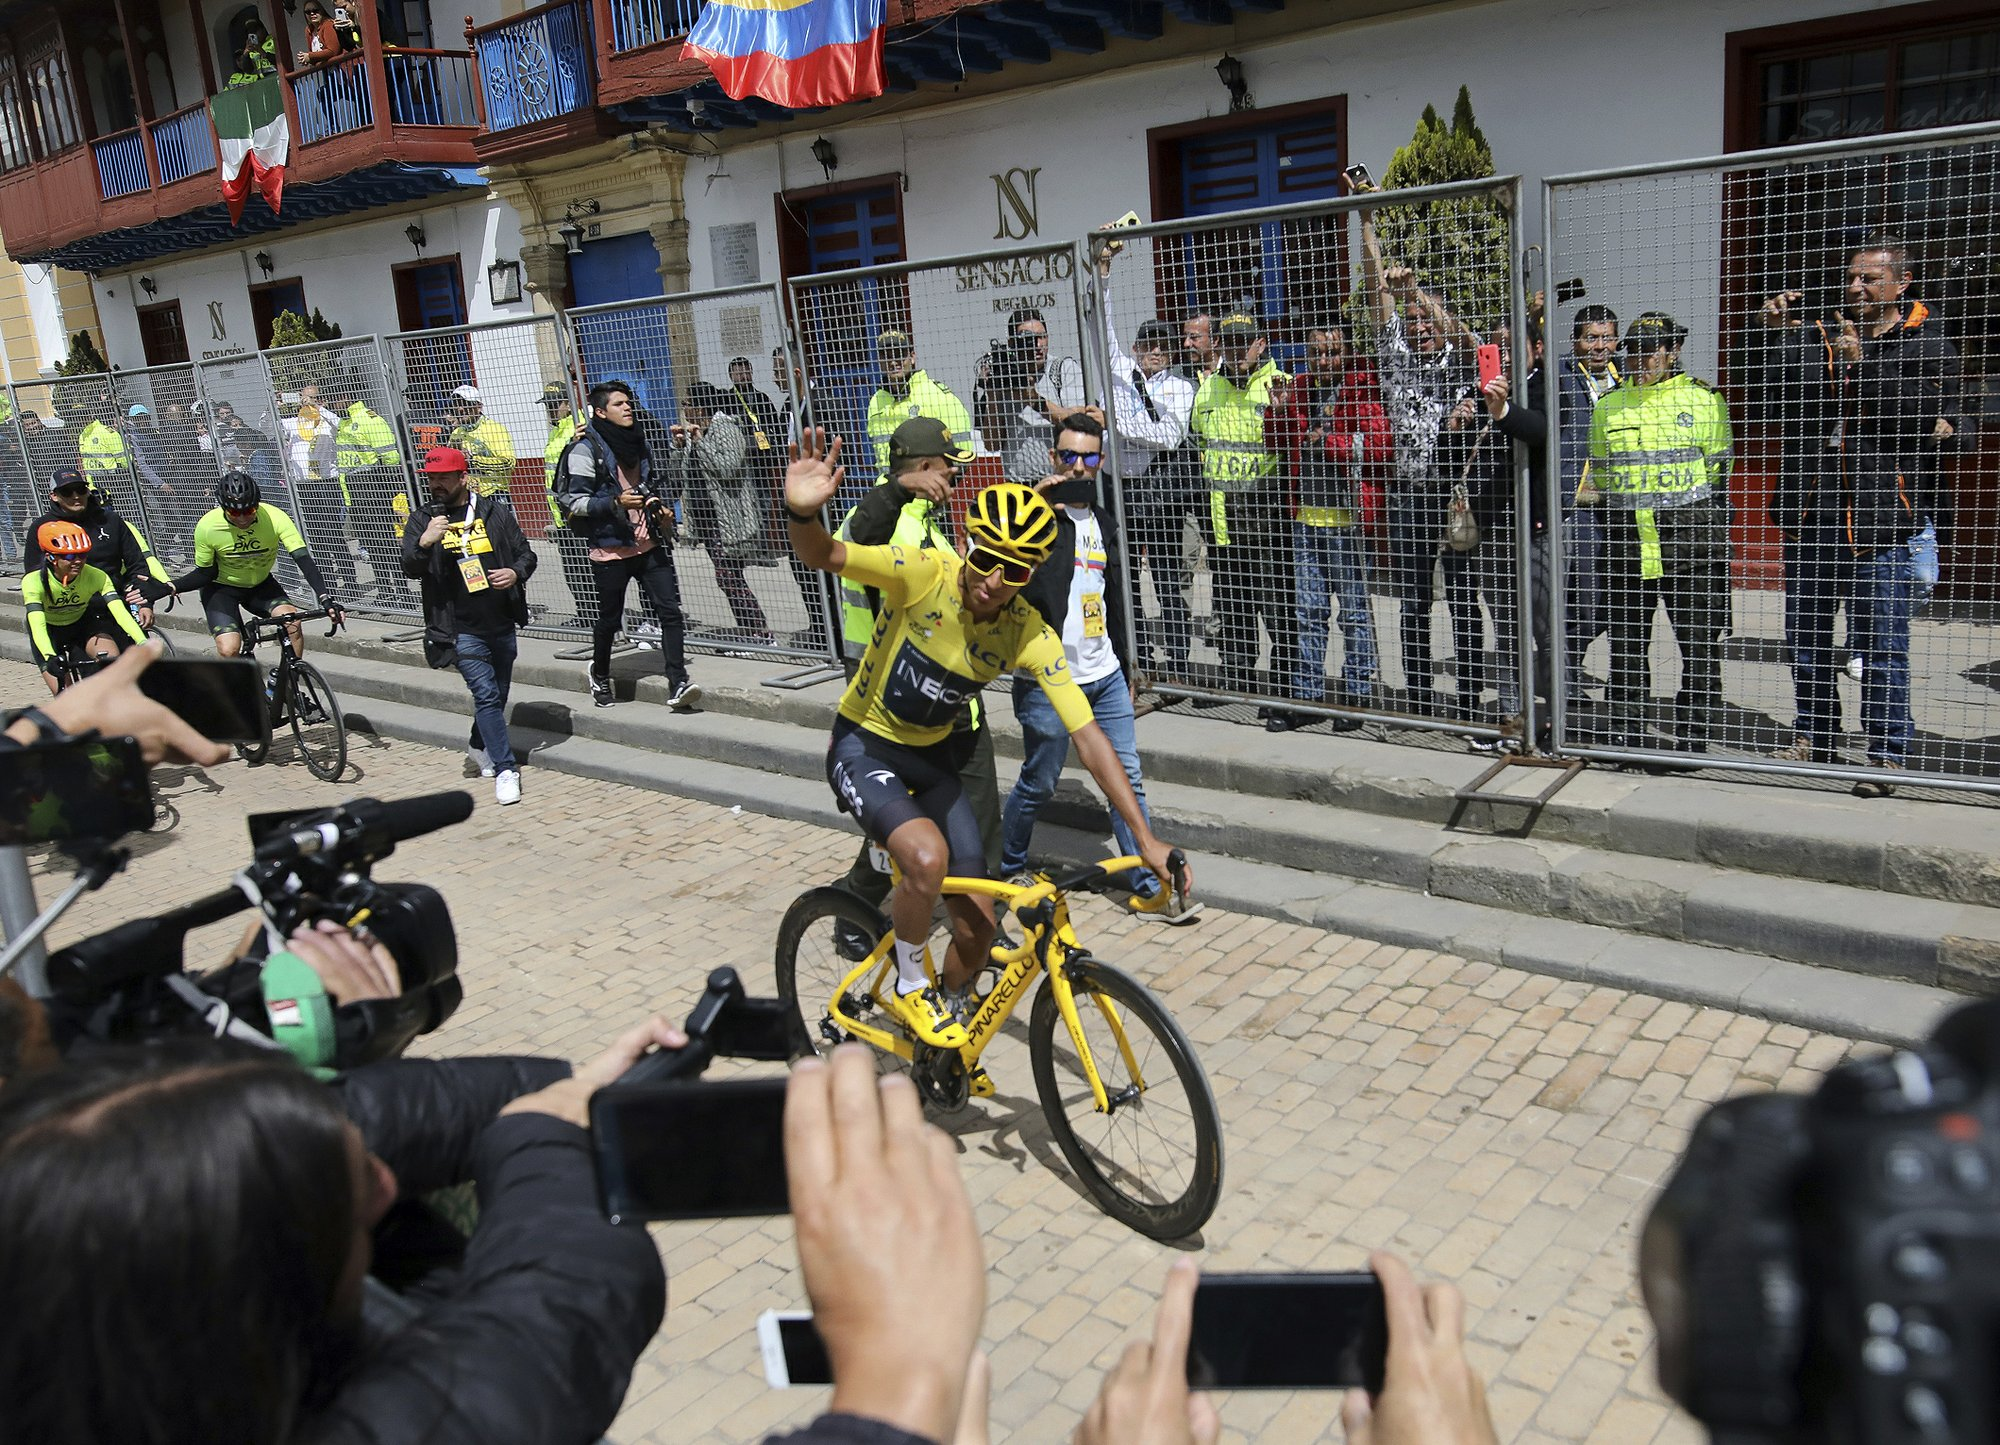 Tour de France champion gets homecoming fiesta in Colombia